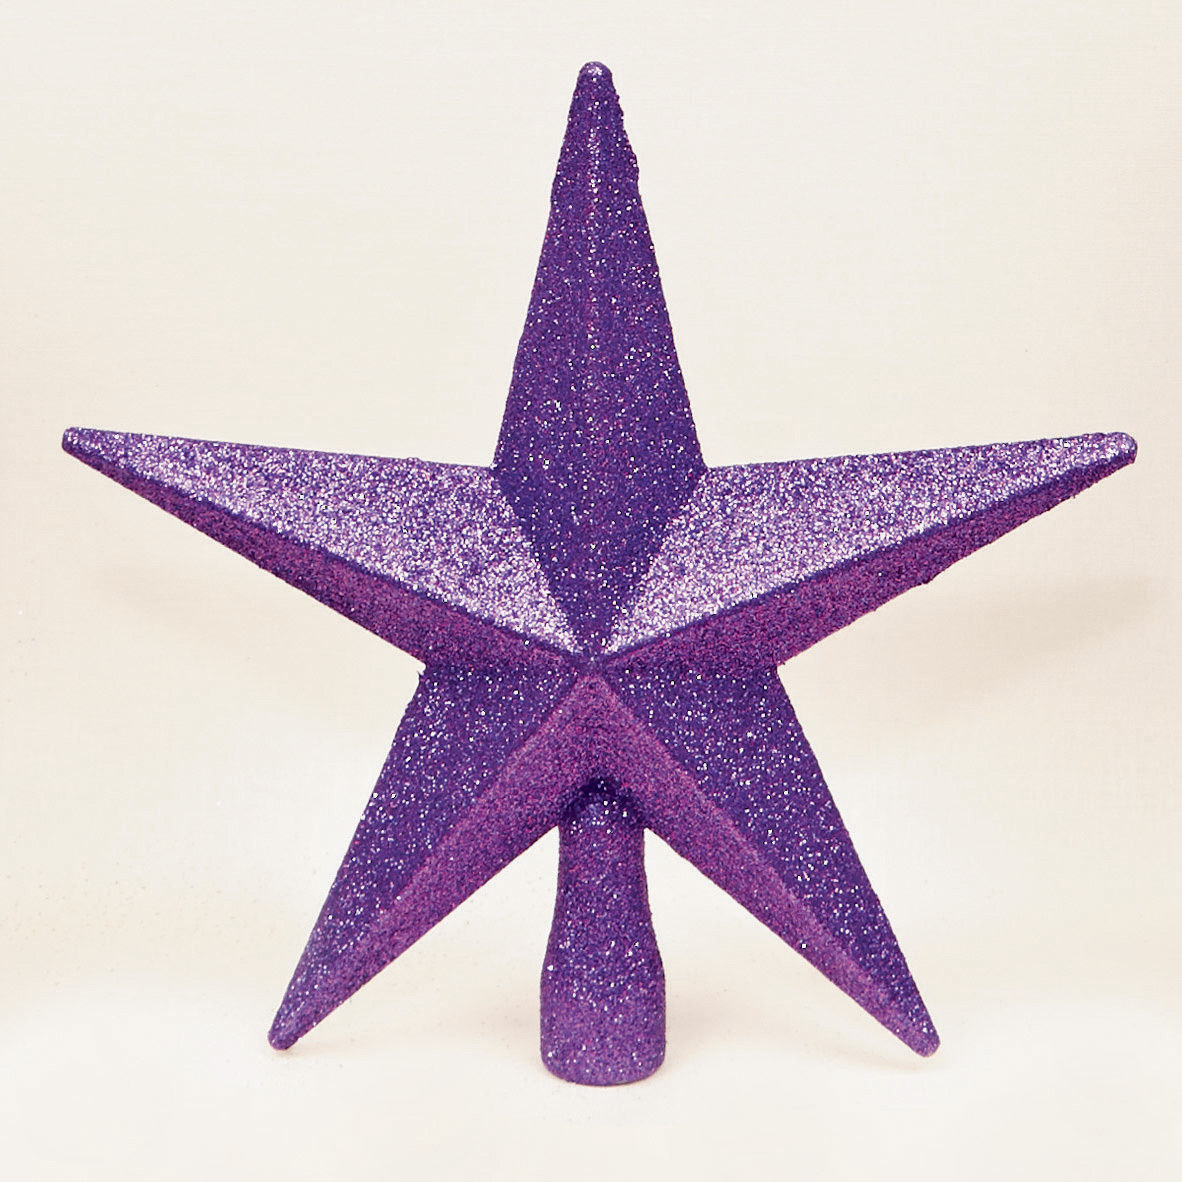 Best Price On Christmas Trees: PURPLE Christmas Tree Top Star Topper Glitter Finish